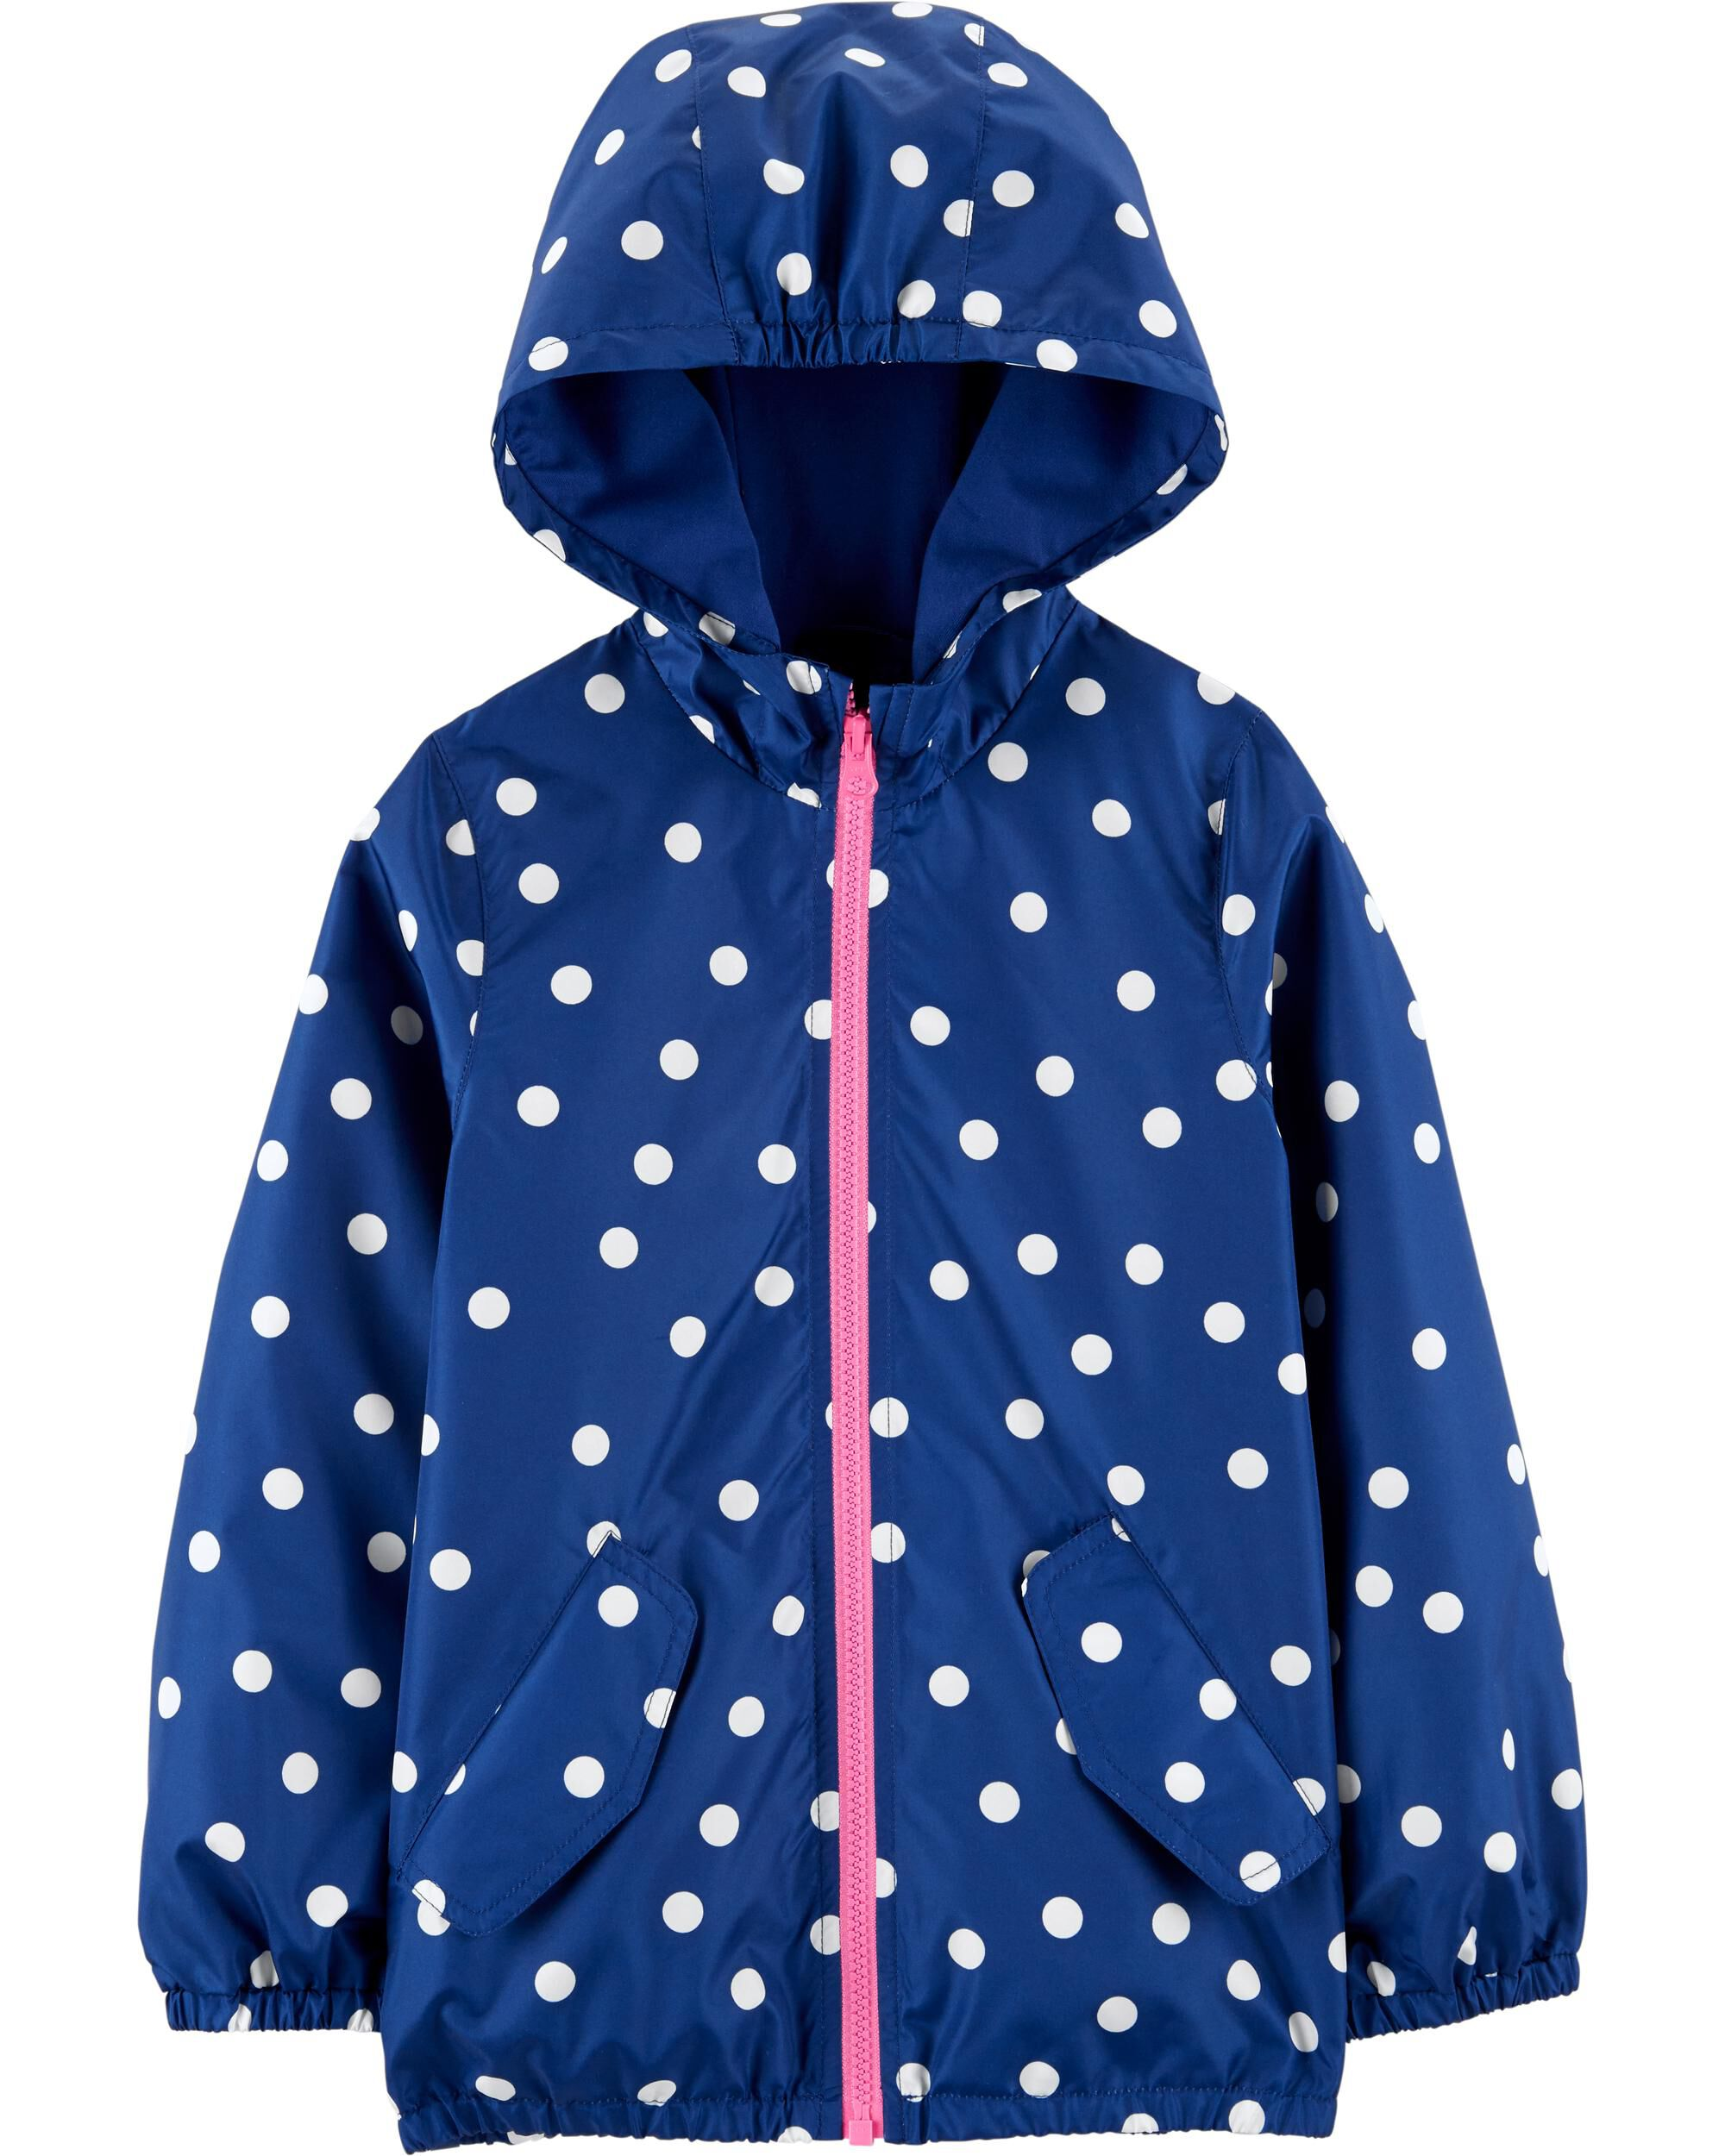 Outerwear Baby & Toddler Clothing Baby Girls Snow Pants 12 Months 50% OFF